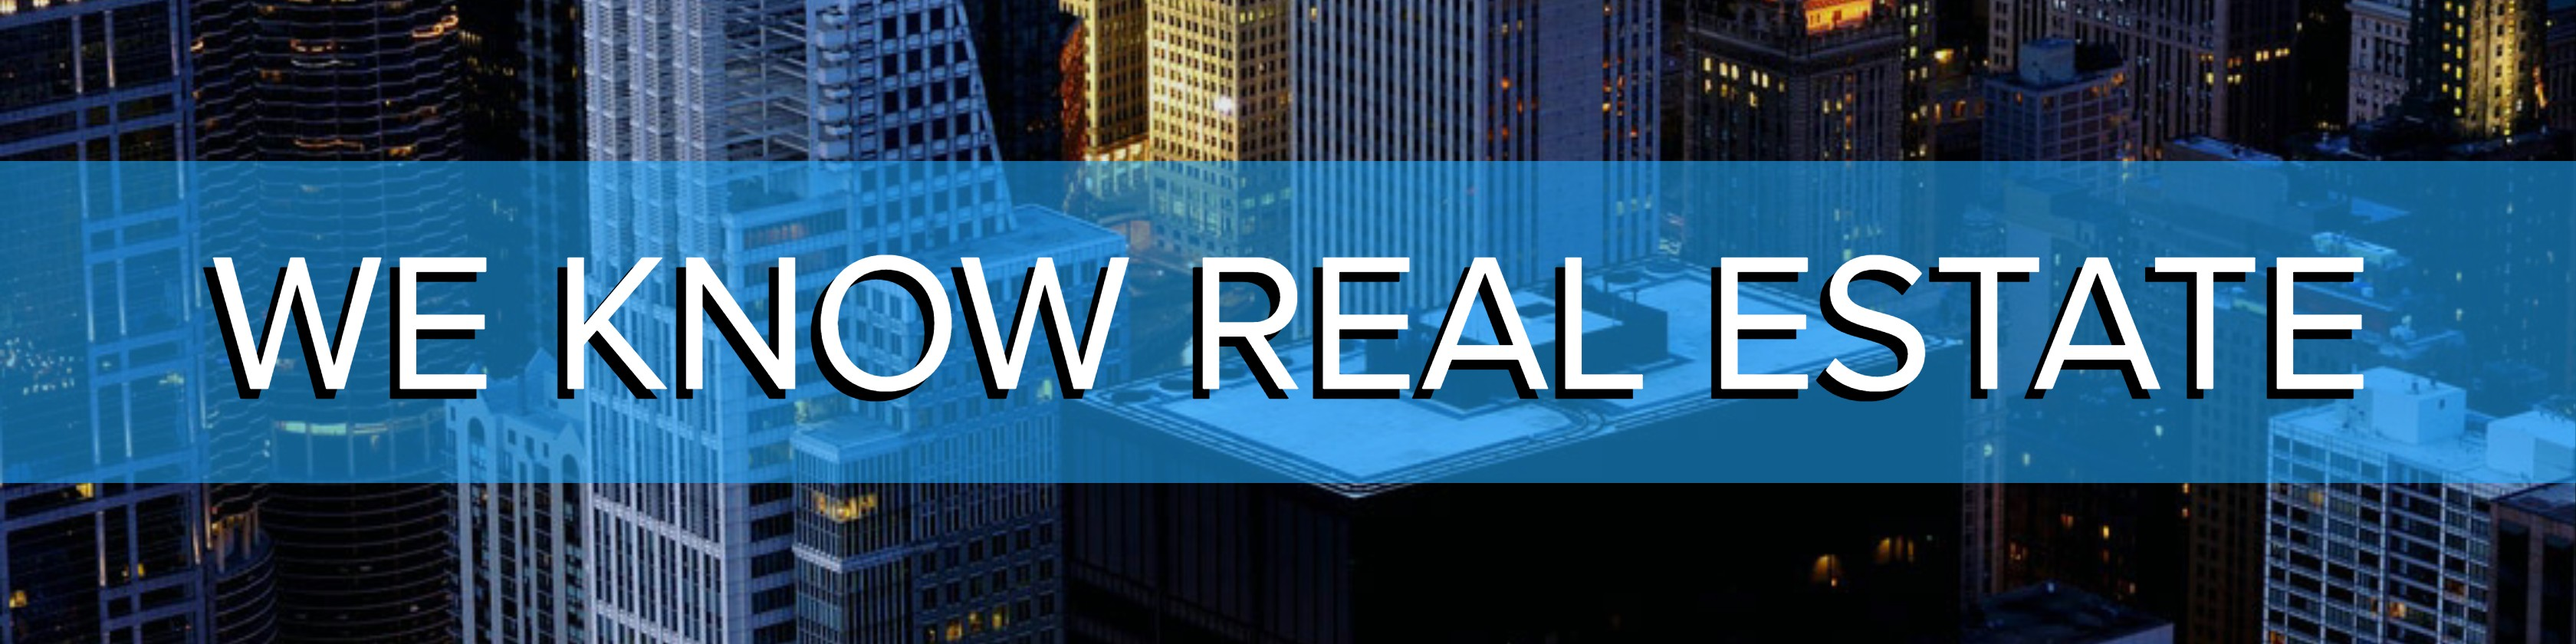 Prime Realty Commercial Real Estate Cover Image